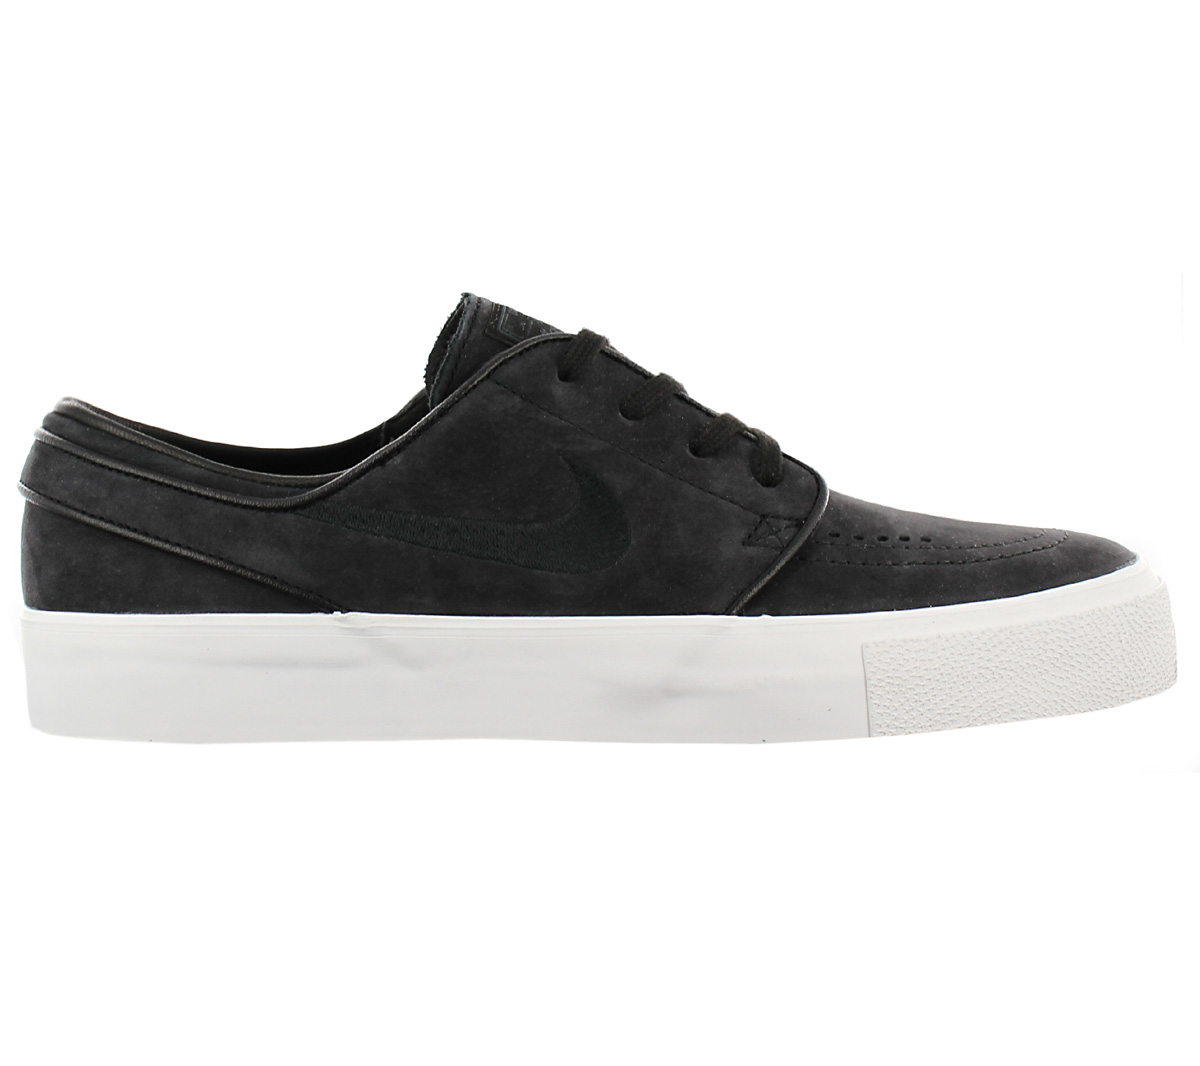 45dbb85d4a1e5 Nike Sb Zoom Janoski Ht Decon Mens Sneakers Leather Shoes Trainers